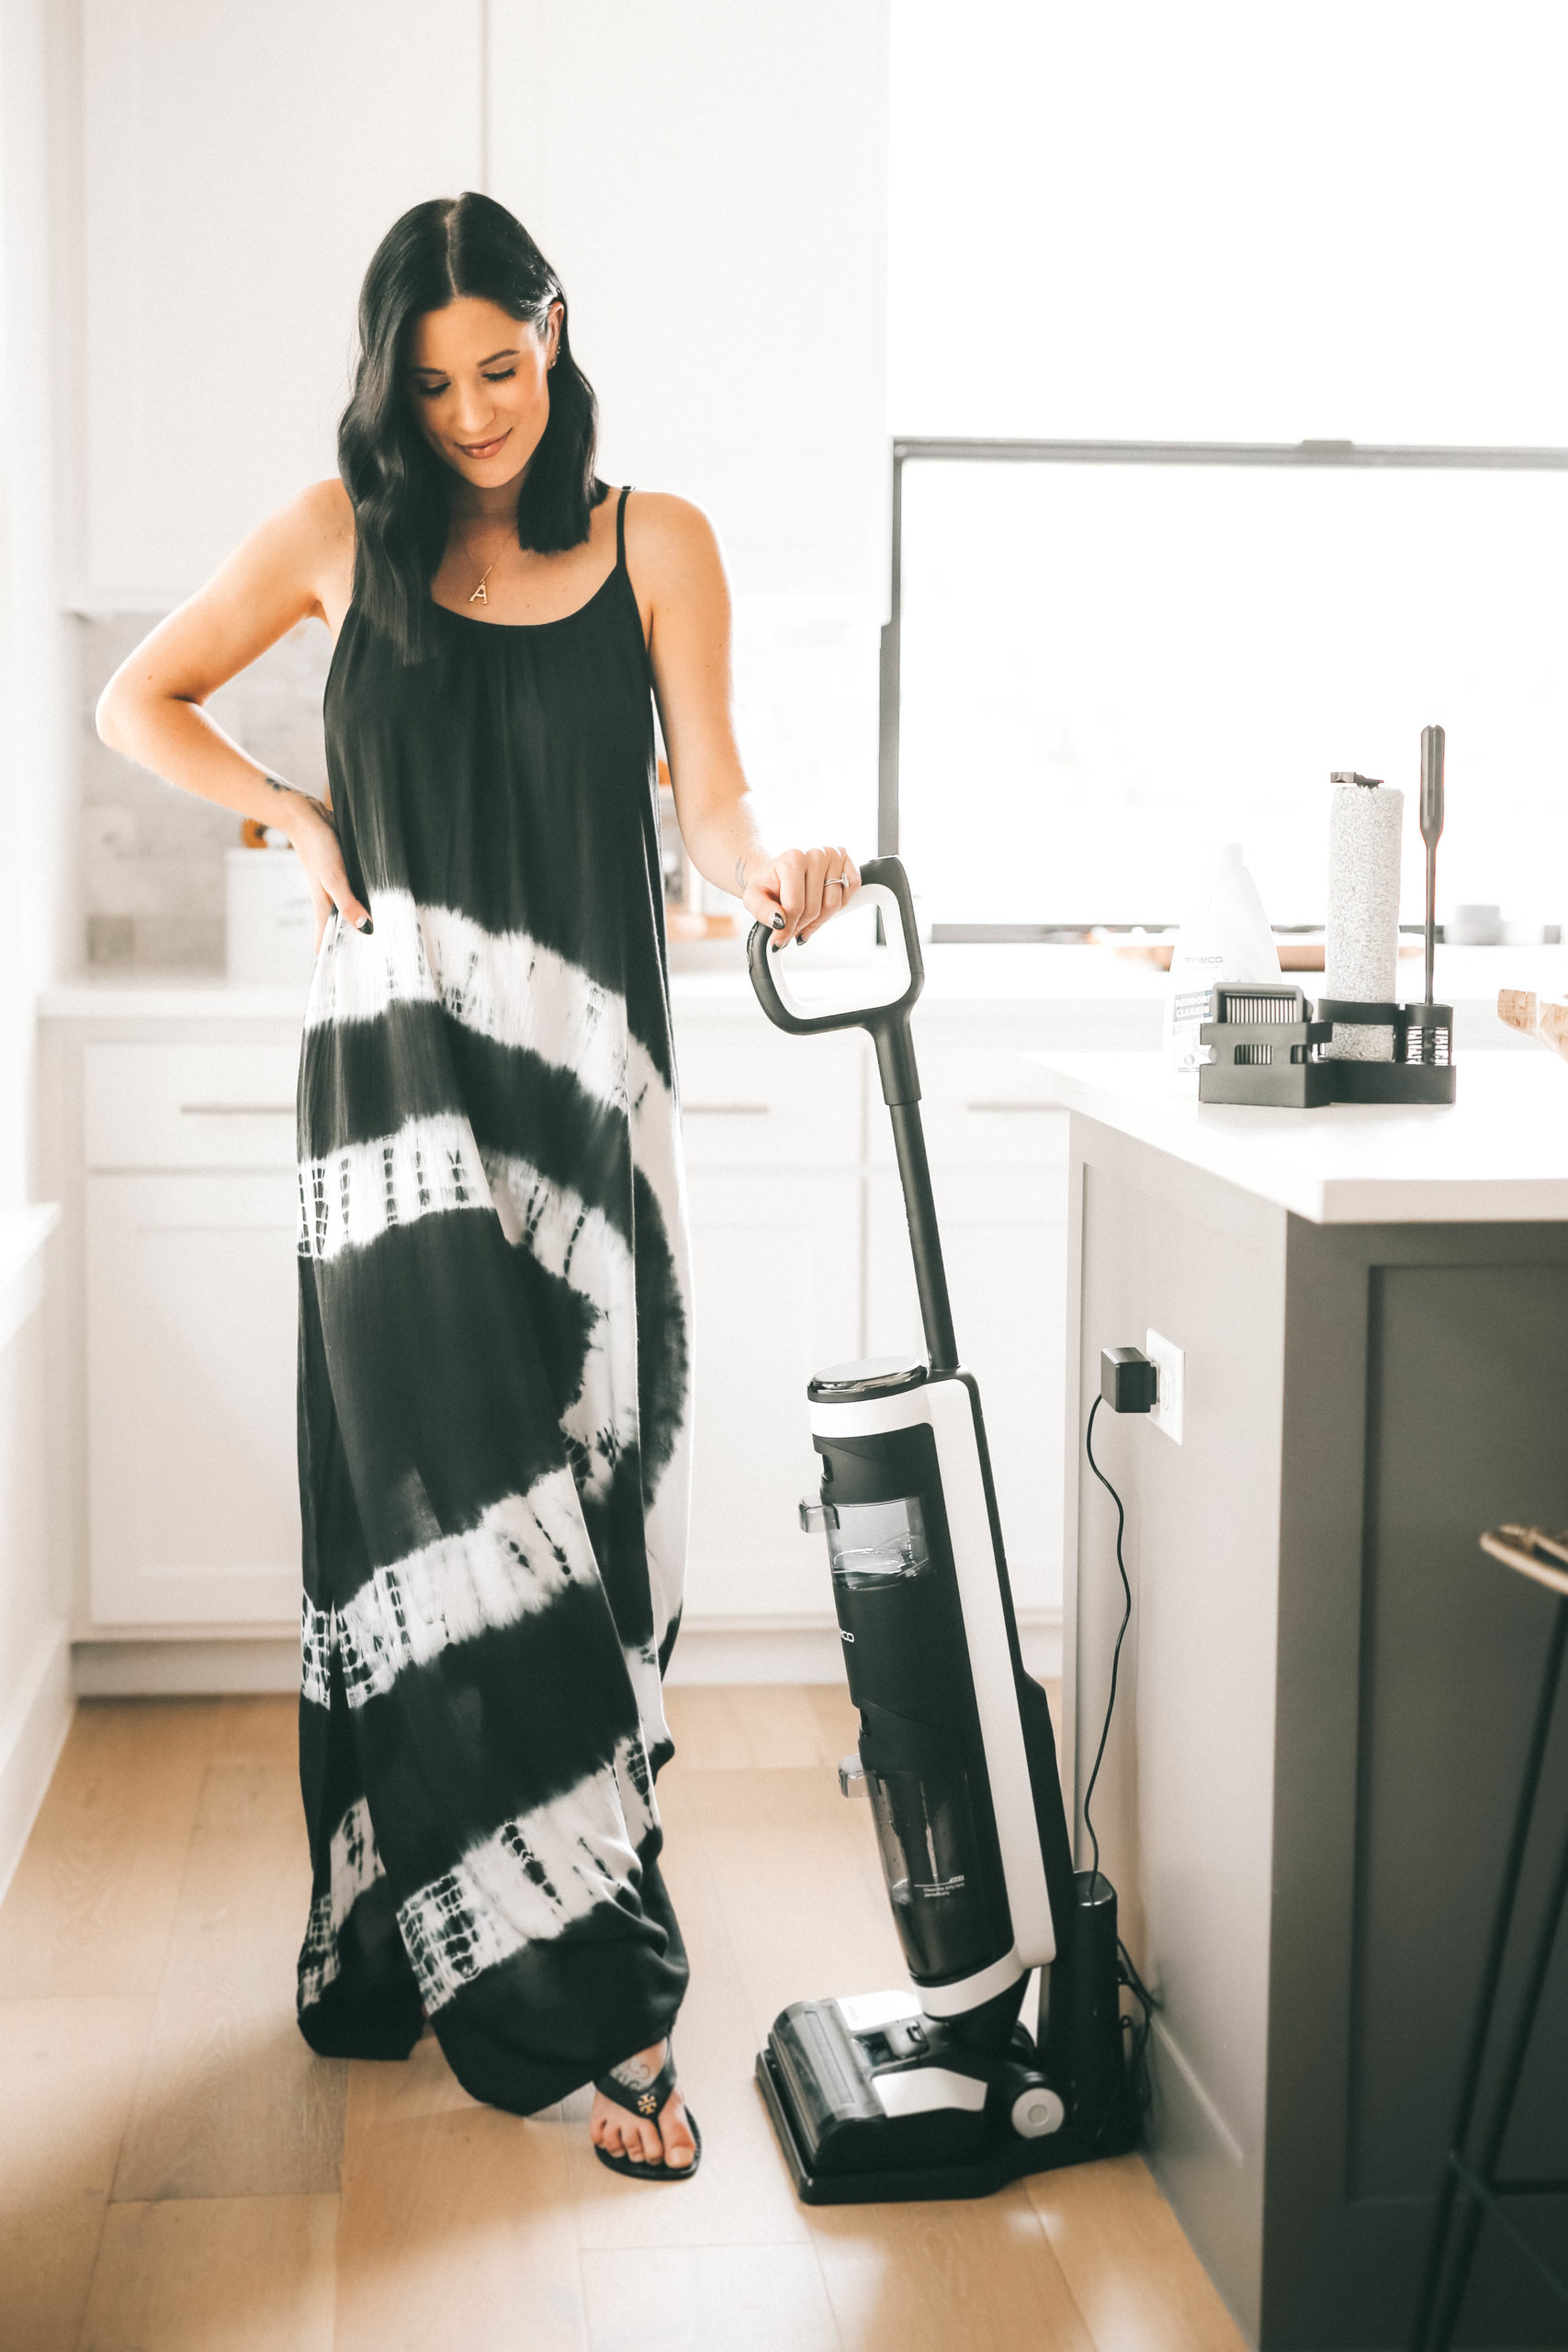 Tineco Floor One S3 by popular Austin lifestyle blog, Dressed to Kill: image of a woman wearing a black and white tie dye maxi and standing in her kitchen next to a Tineco Floor One S3 vacuum.